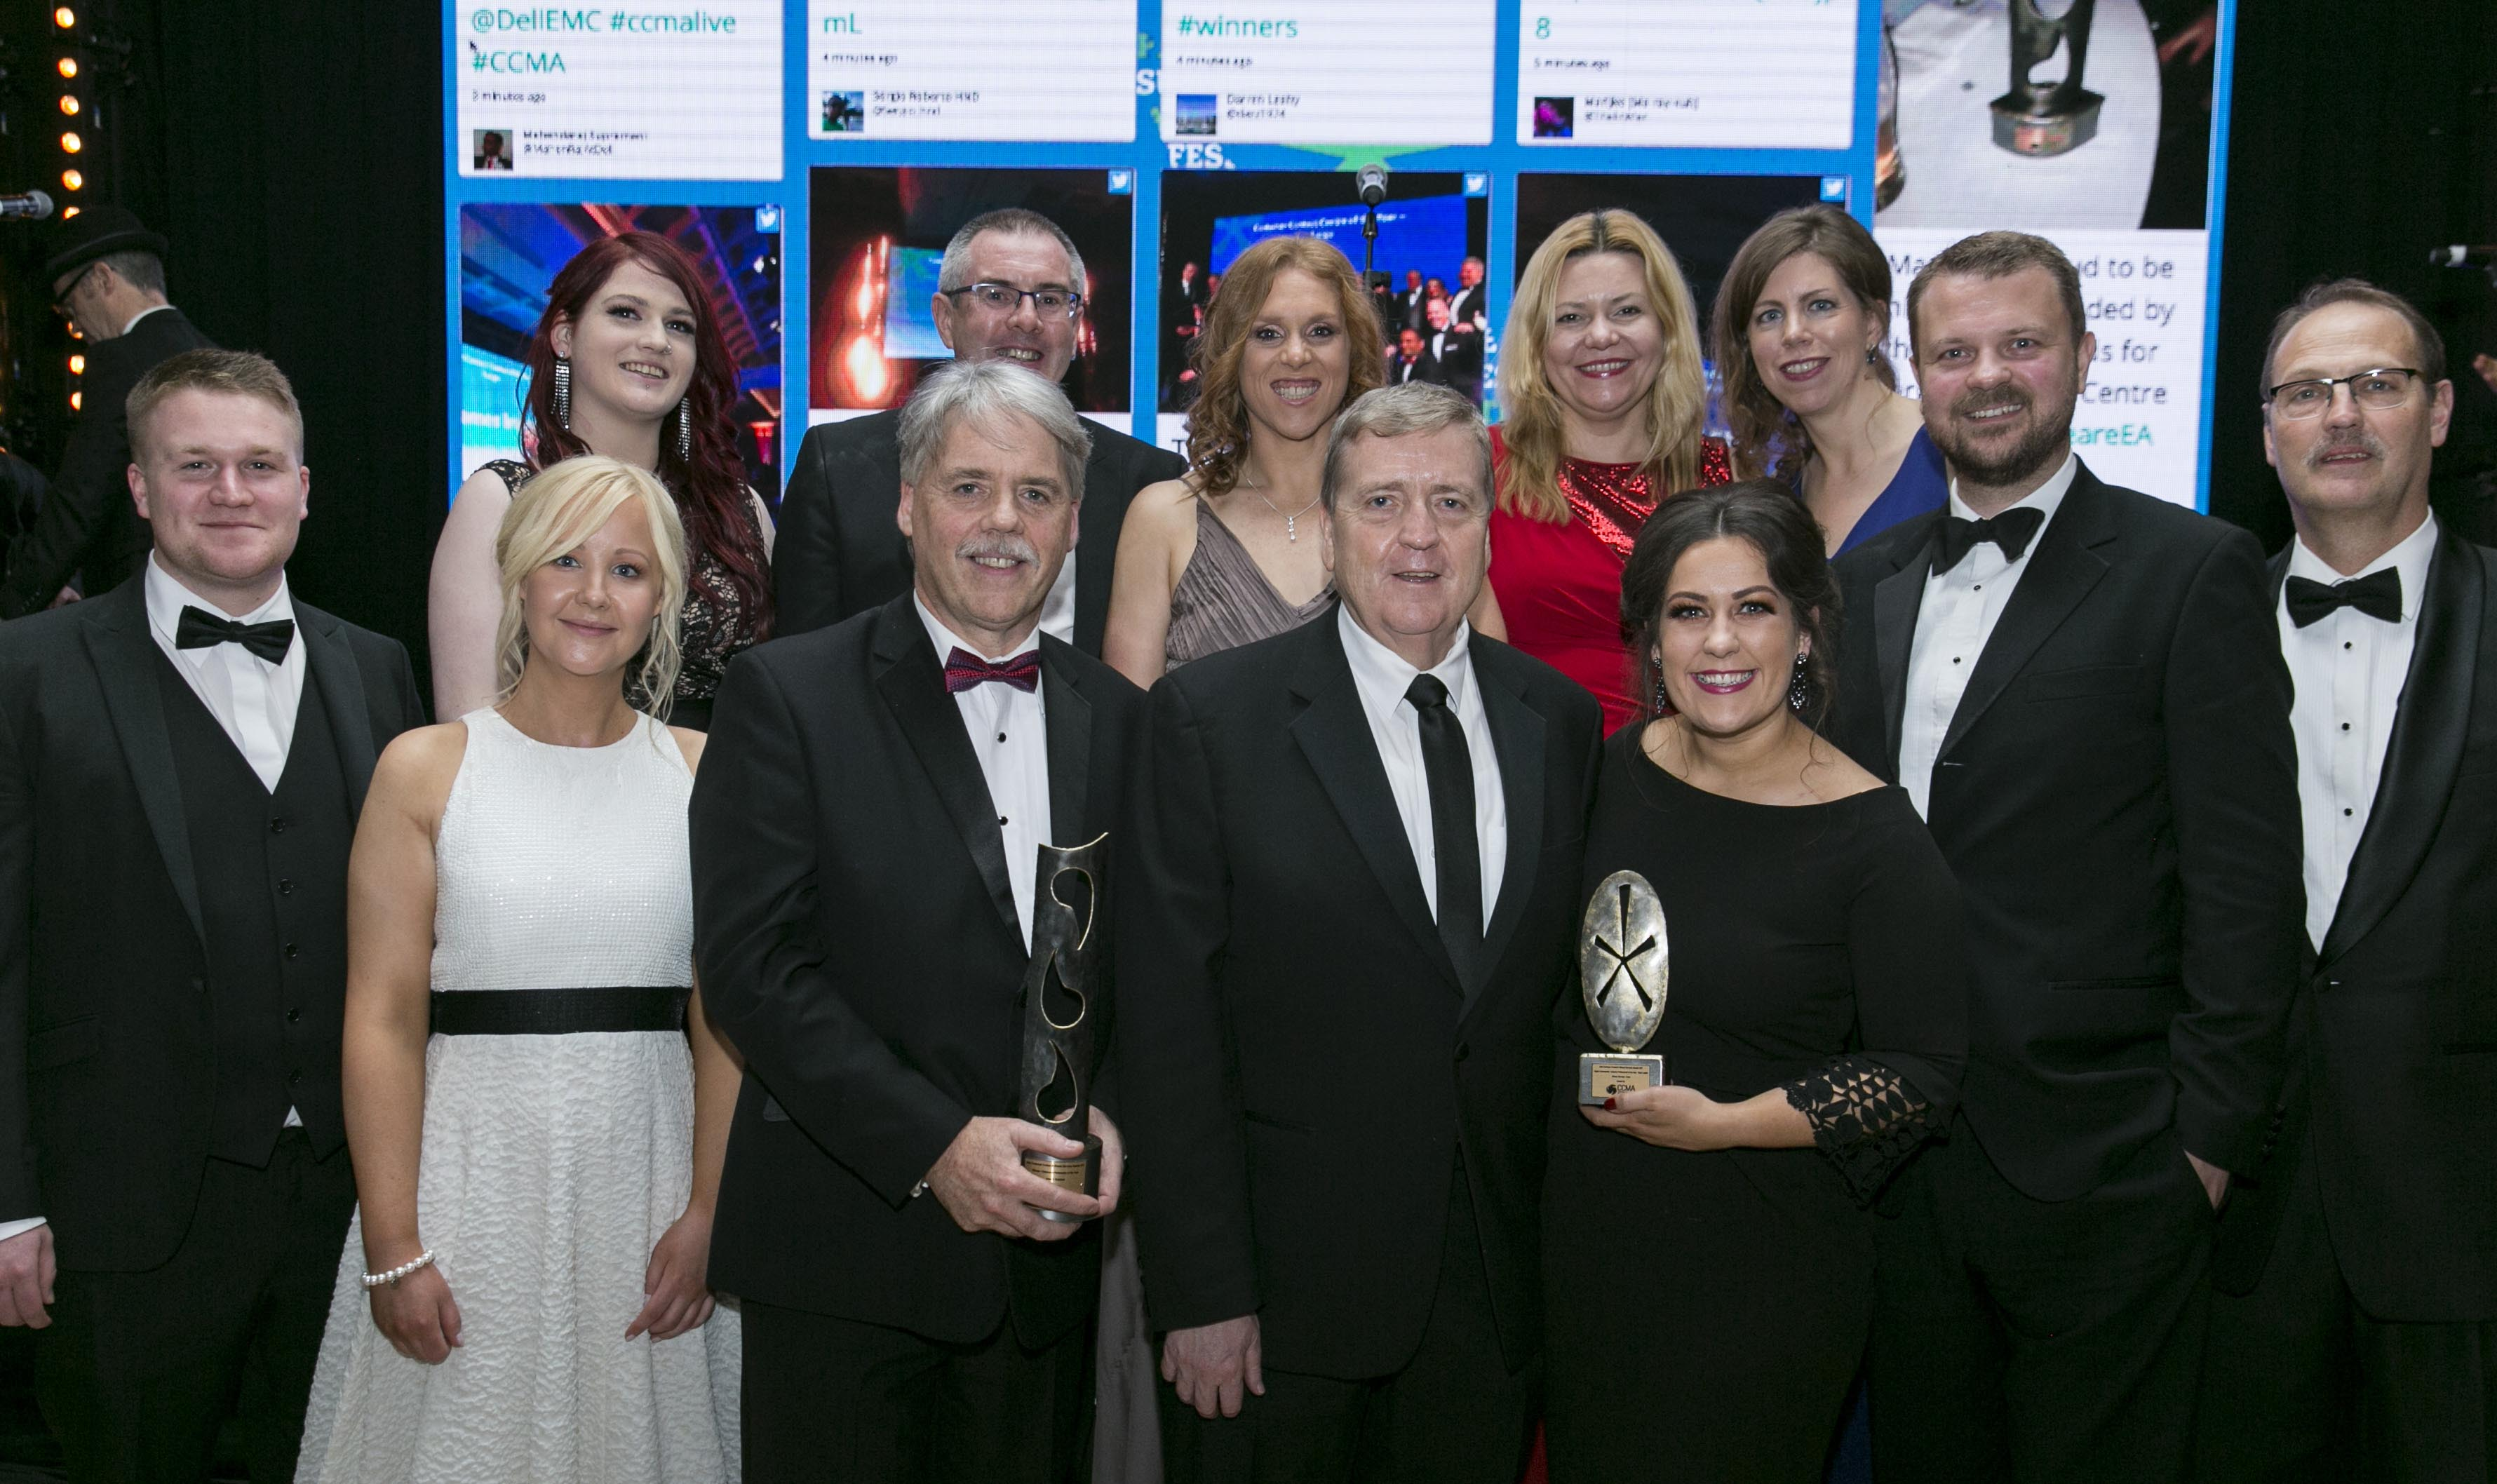 CCMA Awards 2017 : Joe Cahalane and team with Pat Breen, TD Minister of State with special responsibility for Trade, Employment, Business, EU Digital Single Market and Data Protection. Front Row Left to Right: Colin Dolan, Emily Poucher, Joe Cahalane, Arise MD, Pat Breen TD Minister for State, Eimear Murnane , Henrik Jensen, Steve Witcombe,  Back Row left to Right: Sarah O'Sullivan, Ger Burke, Sarah Quin, Sylvia Hanley, Sinead Wall. Photo: Johnny Bambury